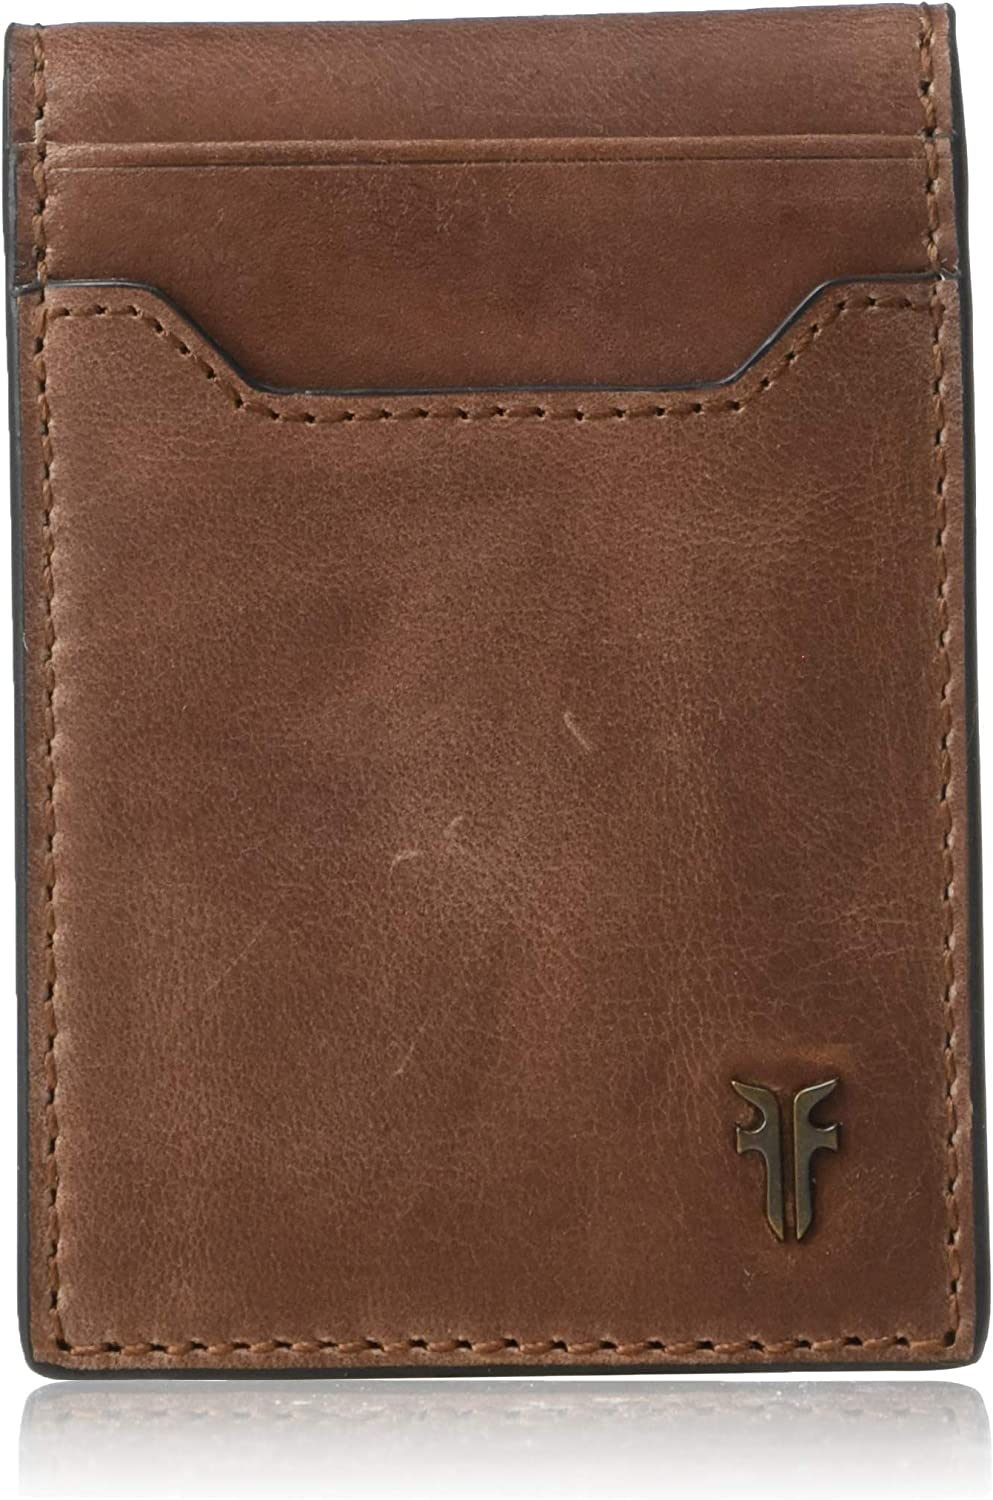 Frye Holden Free shipping anywhere in the nation Folded CASE Max 54% OFF Card